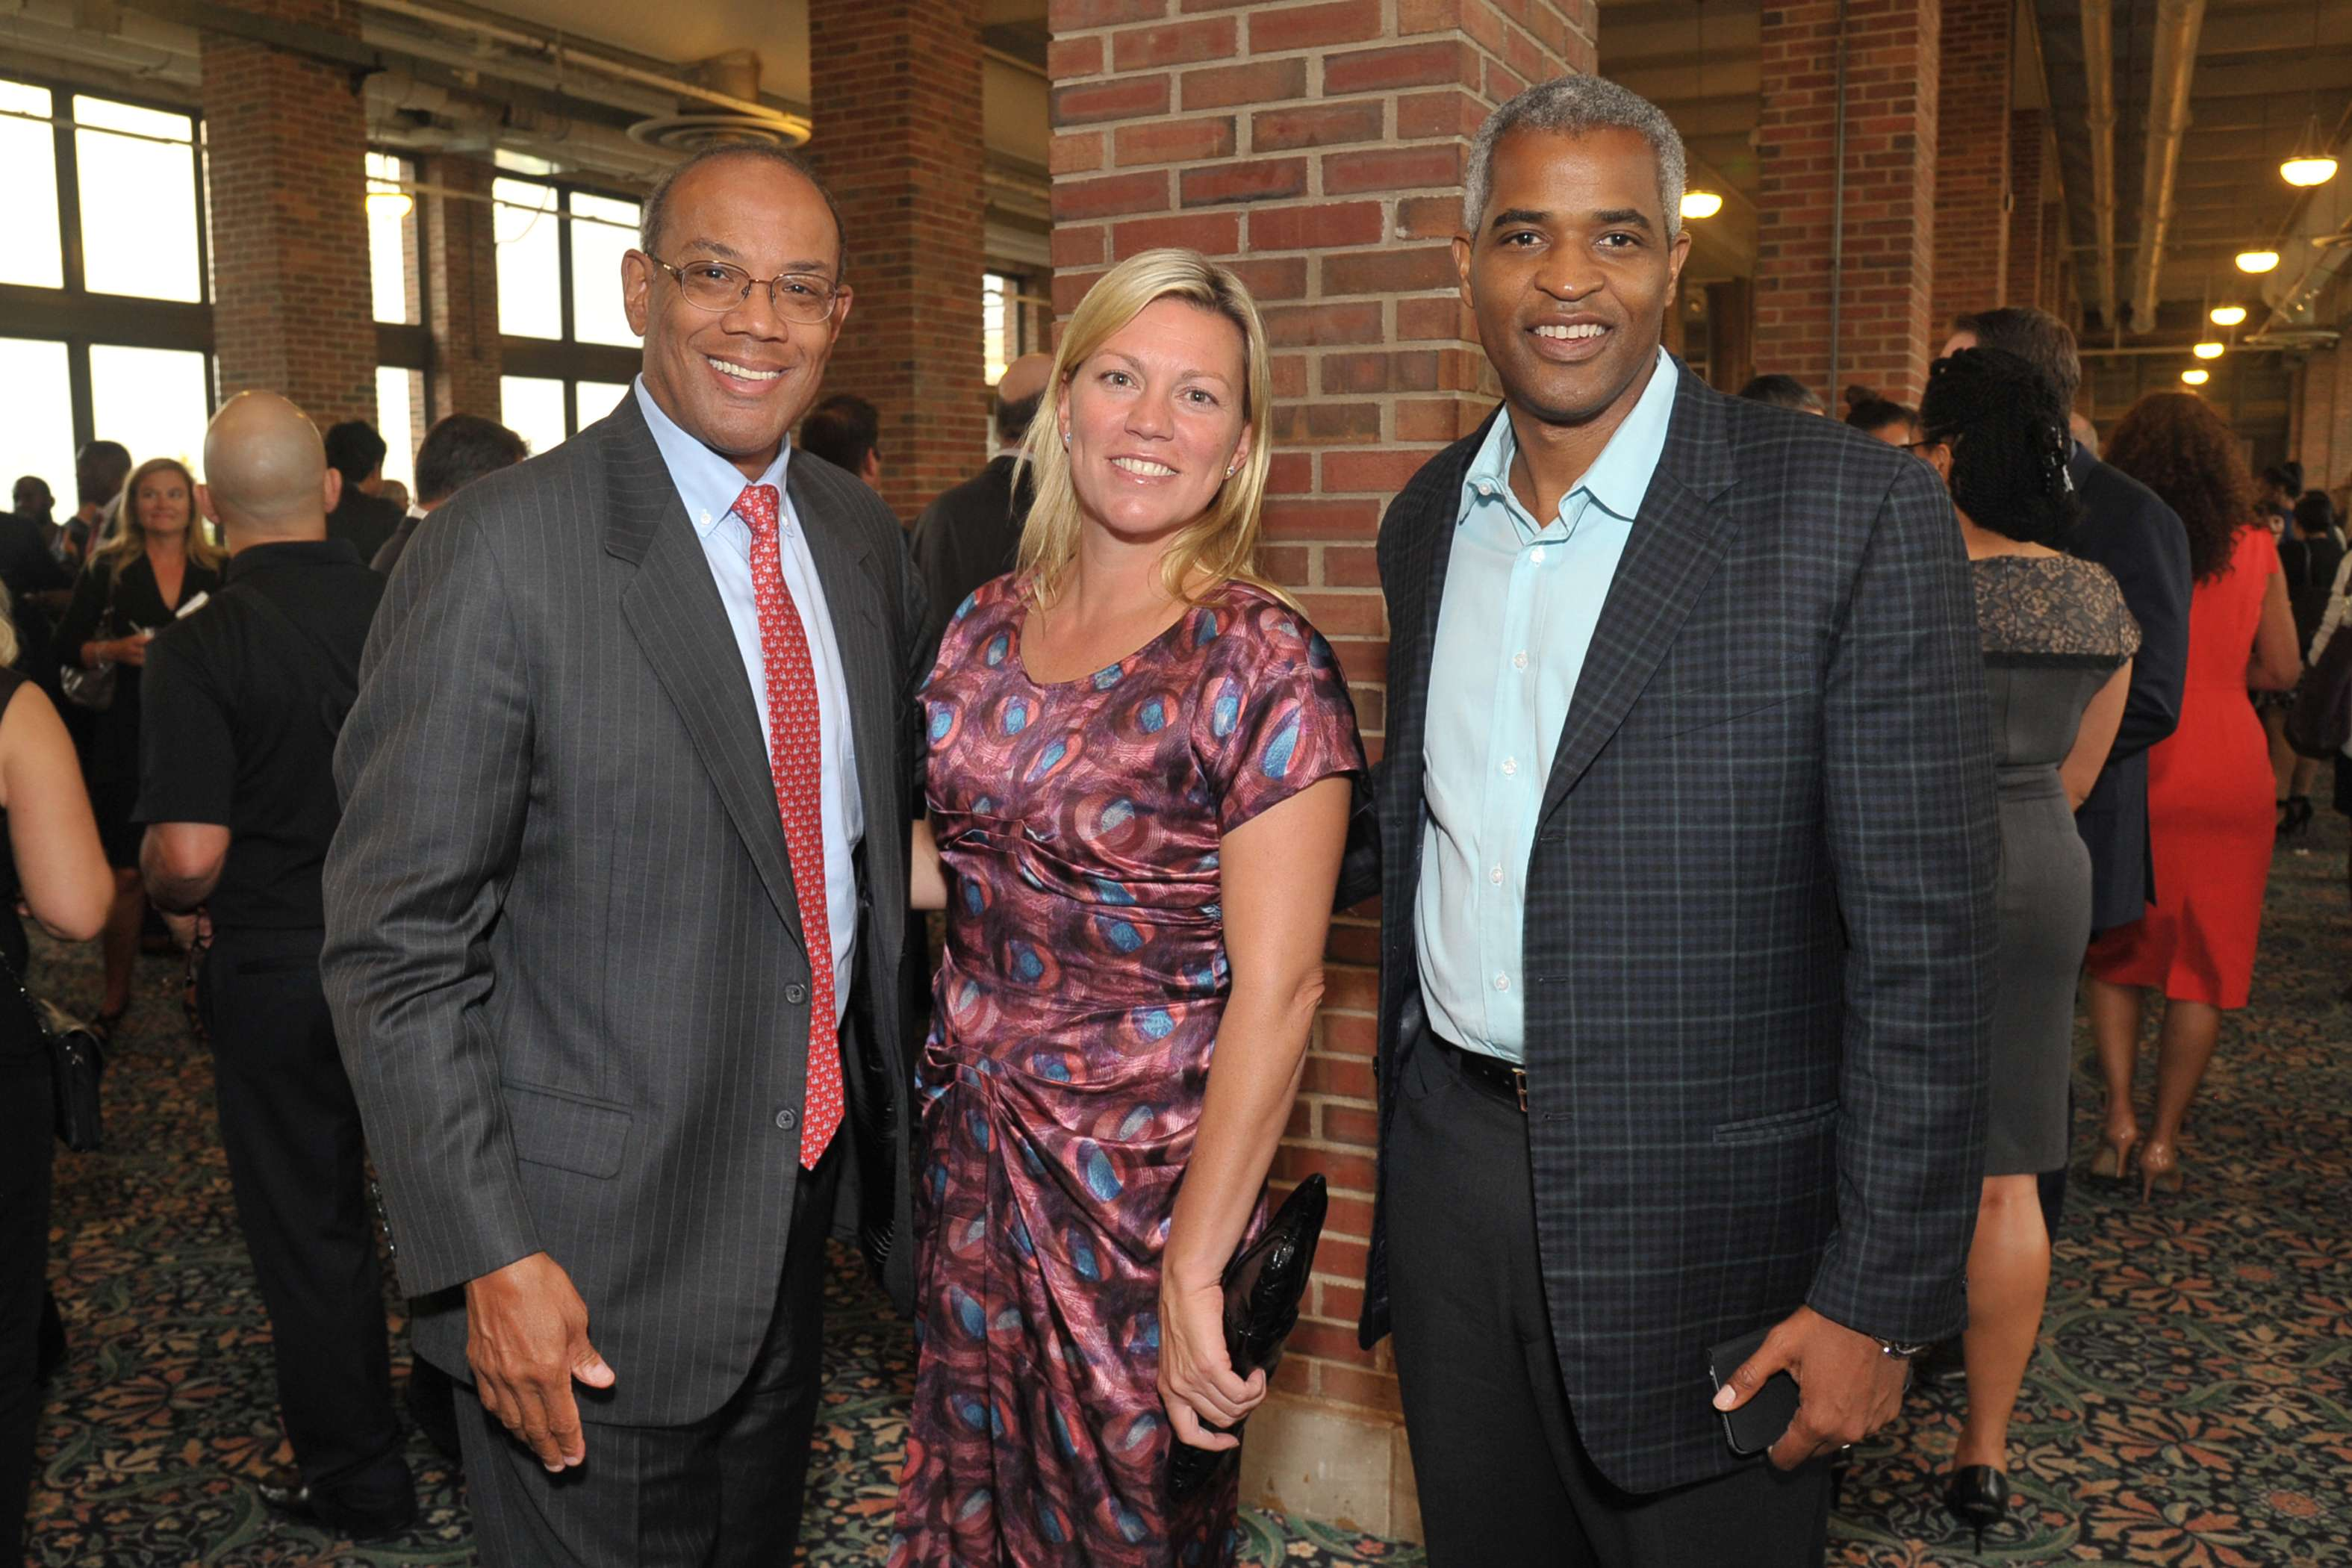 <p>After School Matters Board Member Nora Daley poses with John Rogers (left) and Martin Nesbitt (right) at the After School Matters Annual Gala on September 19, 2016 at Chicago's historic Navy Pier. Photo credit: Dan Rest</p>